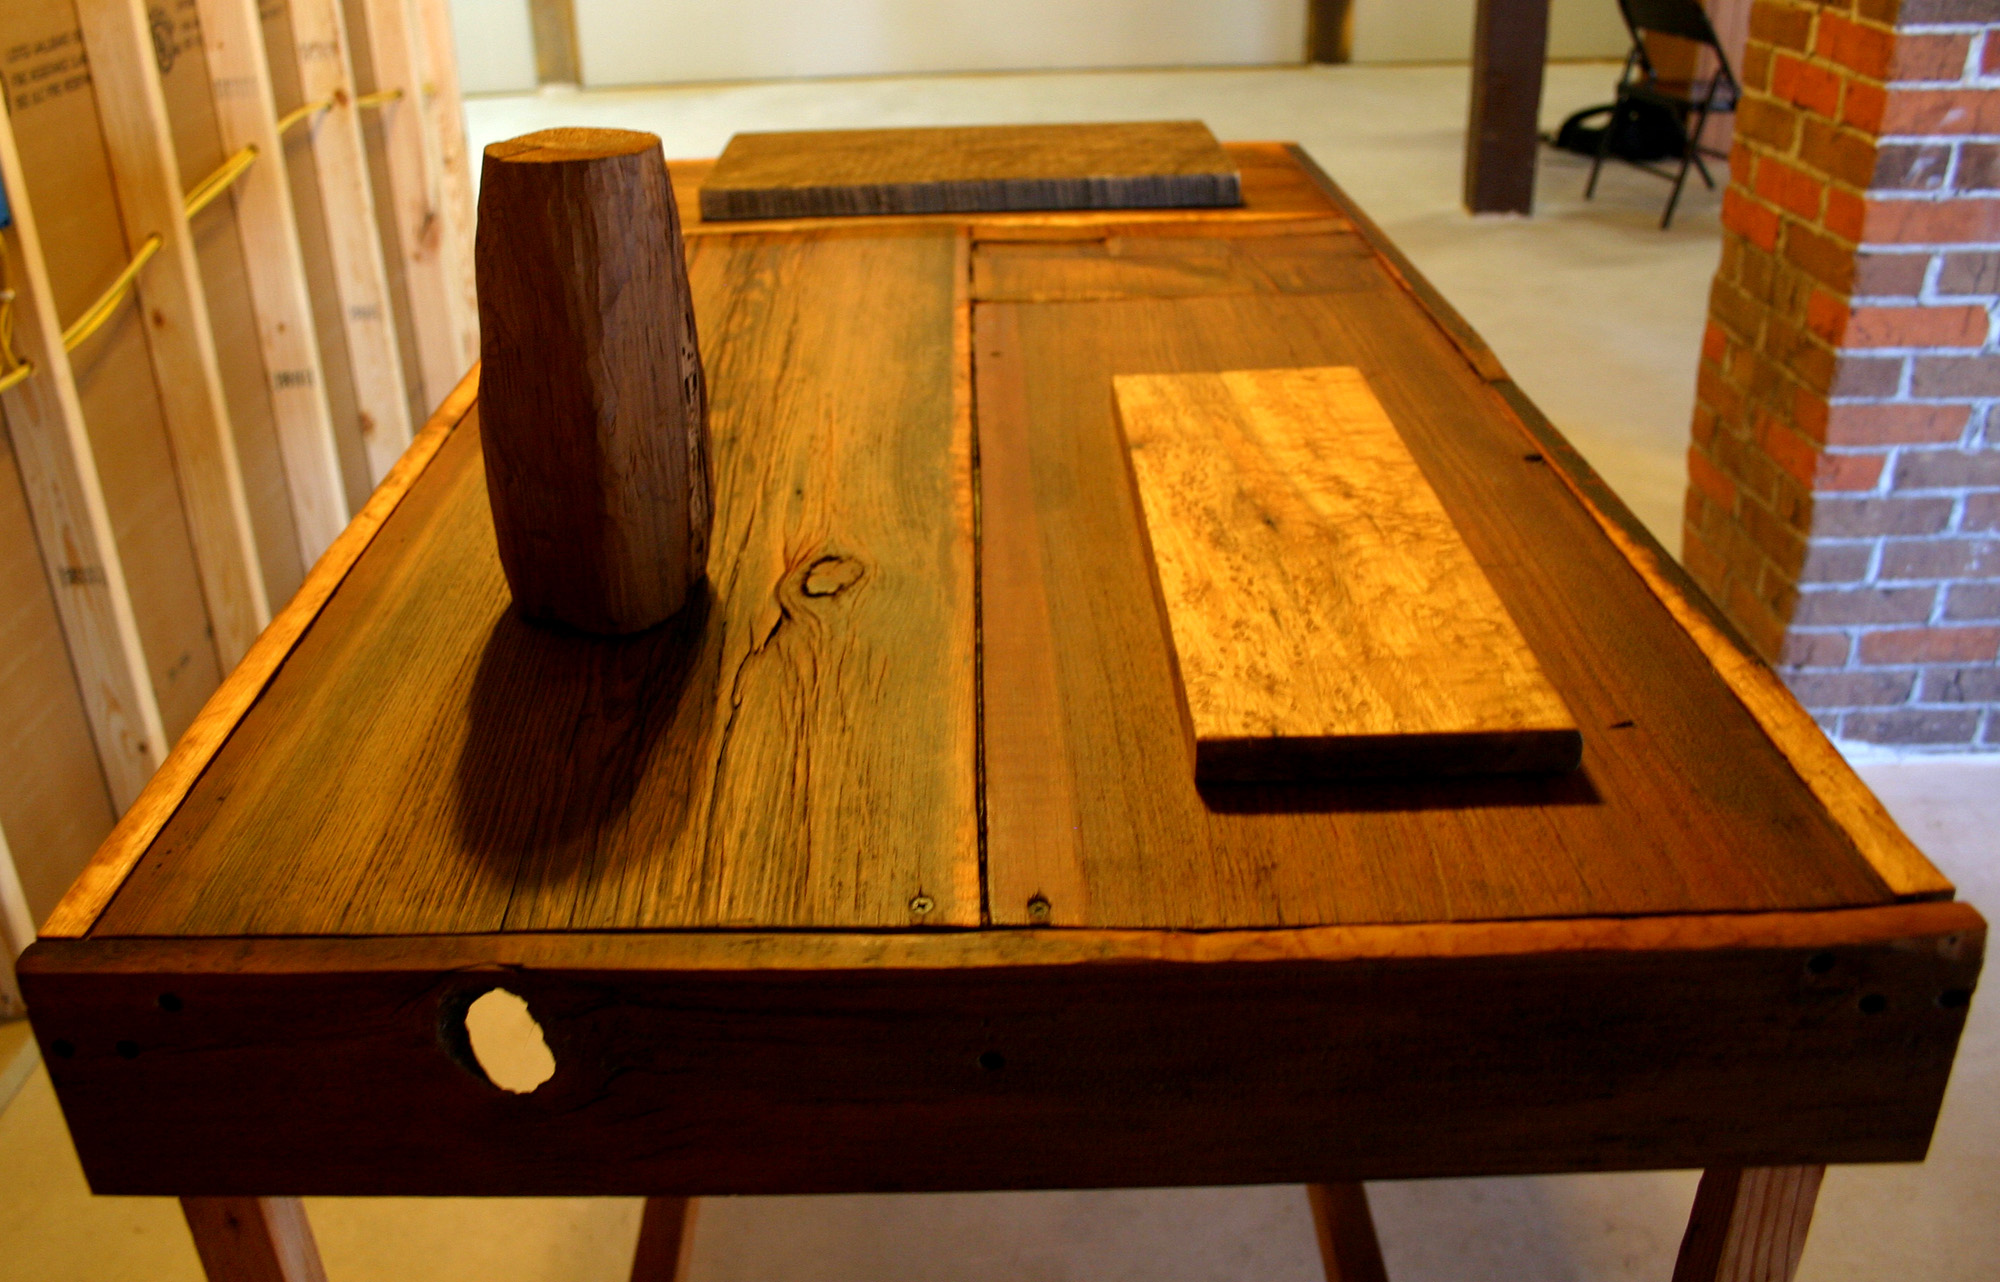 A table, a sculpture and two wood carvings made from reclaimed barn wood.  June-July 2016.  The Sanctuary was created while in residence at the Wormfarm Institute.